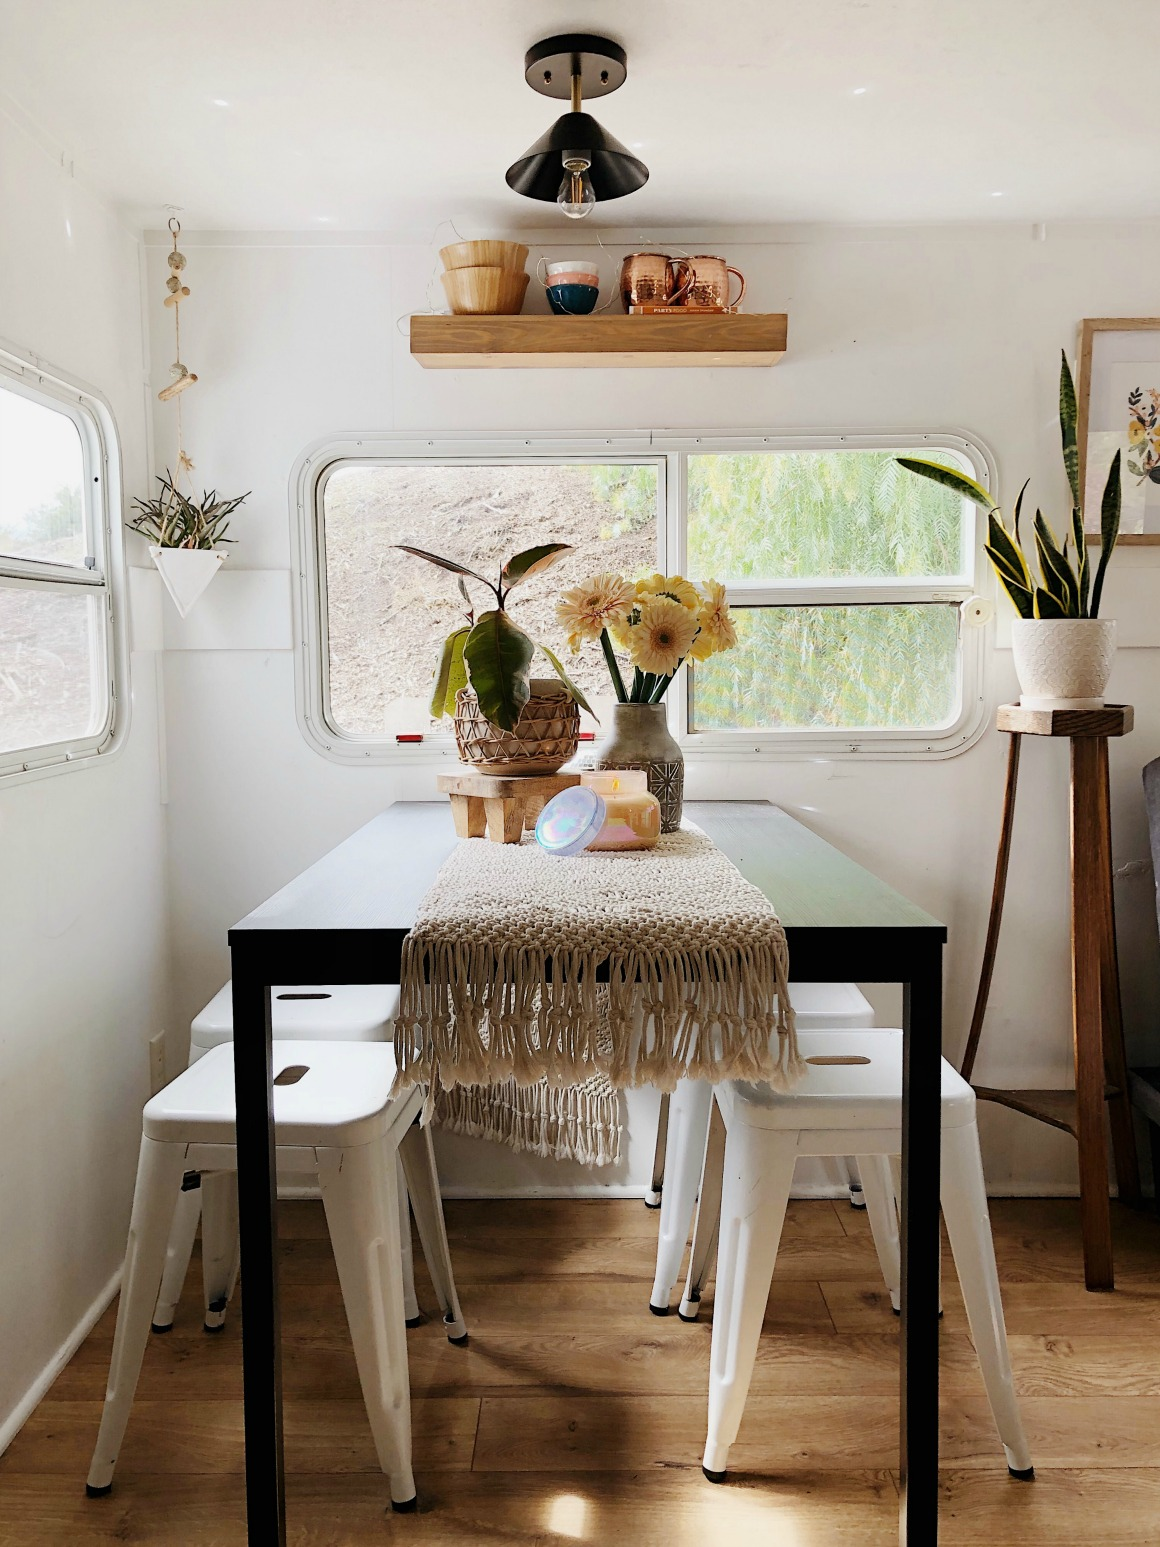 Small-Space-Living-What-living-in-an-RV-looks-like-66